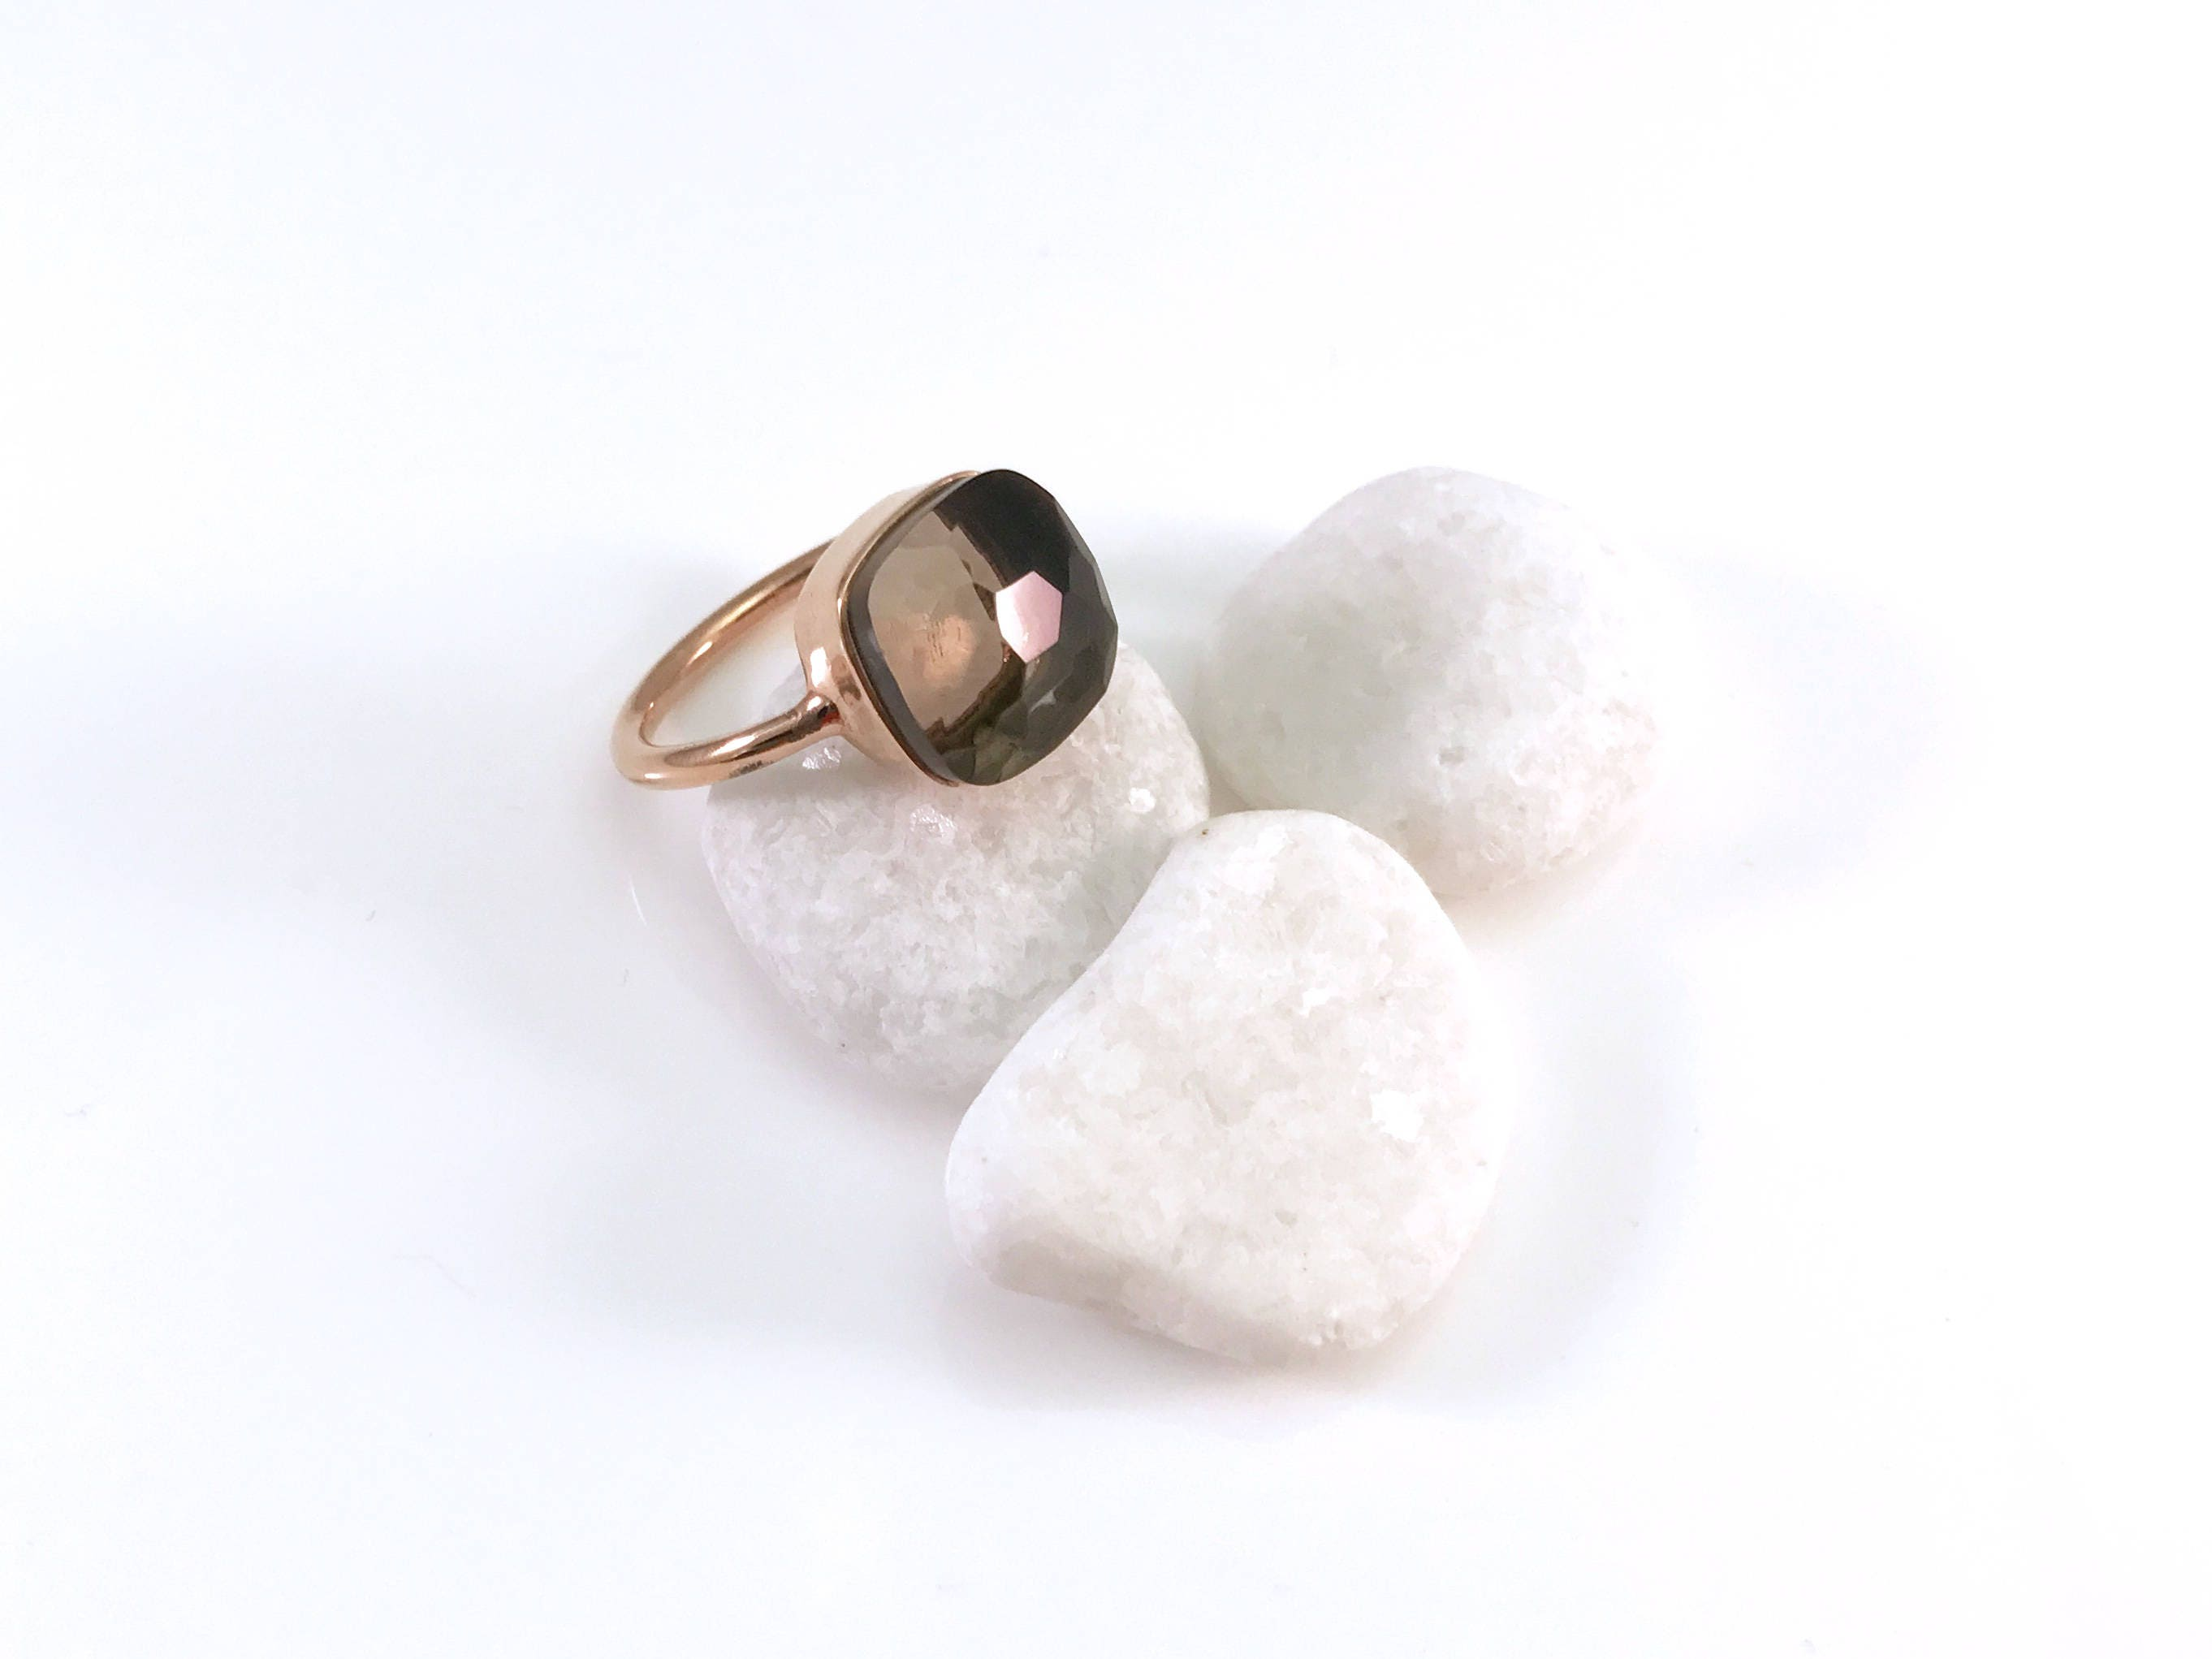 Smoky quartz sterling silver stackable rings and gold stackable rings